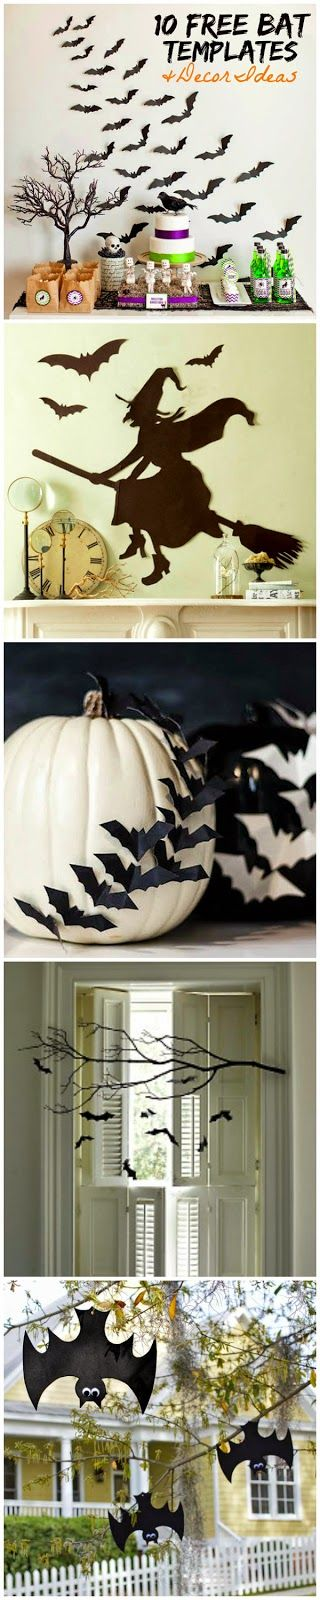 Best 25 halloween templates ideas on pinterest for Decor 6 template